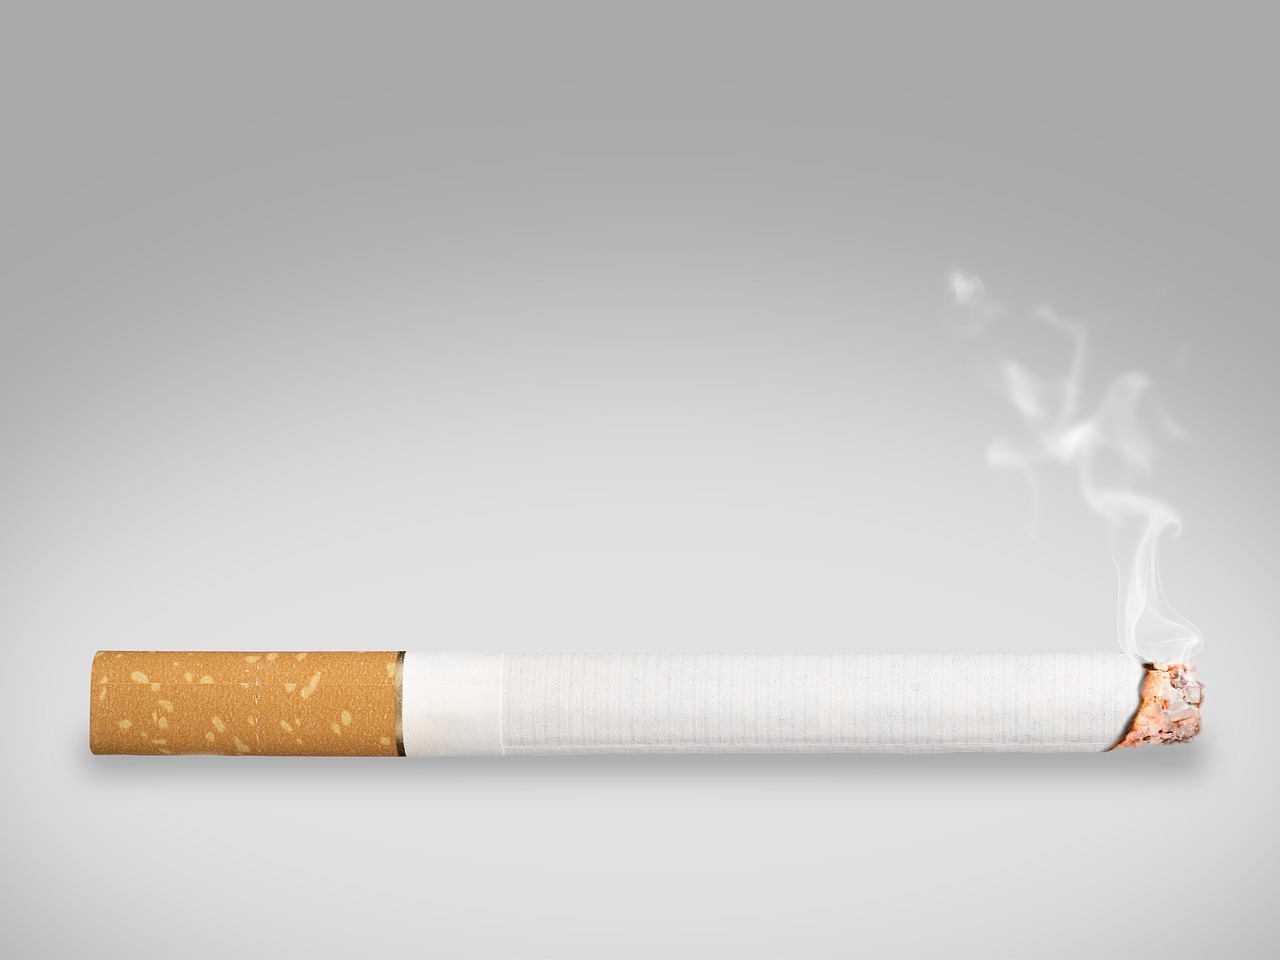 cigarette links to article